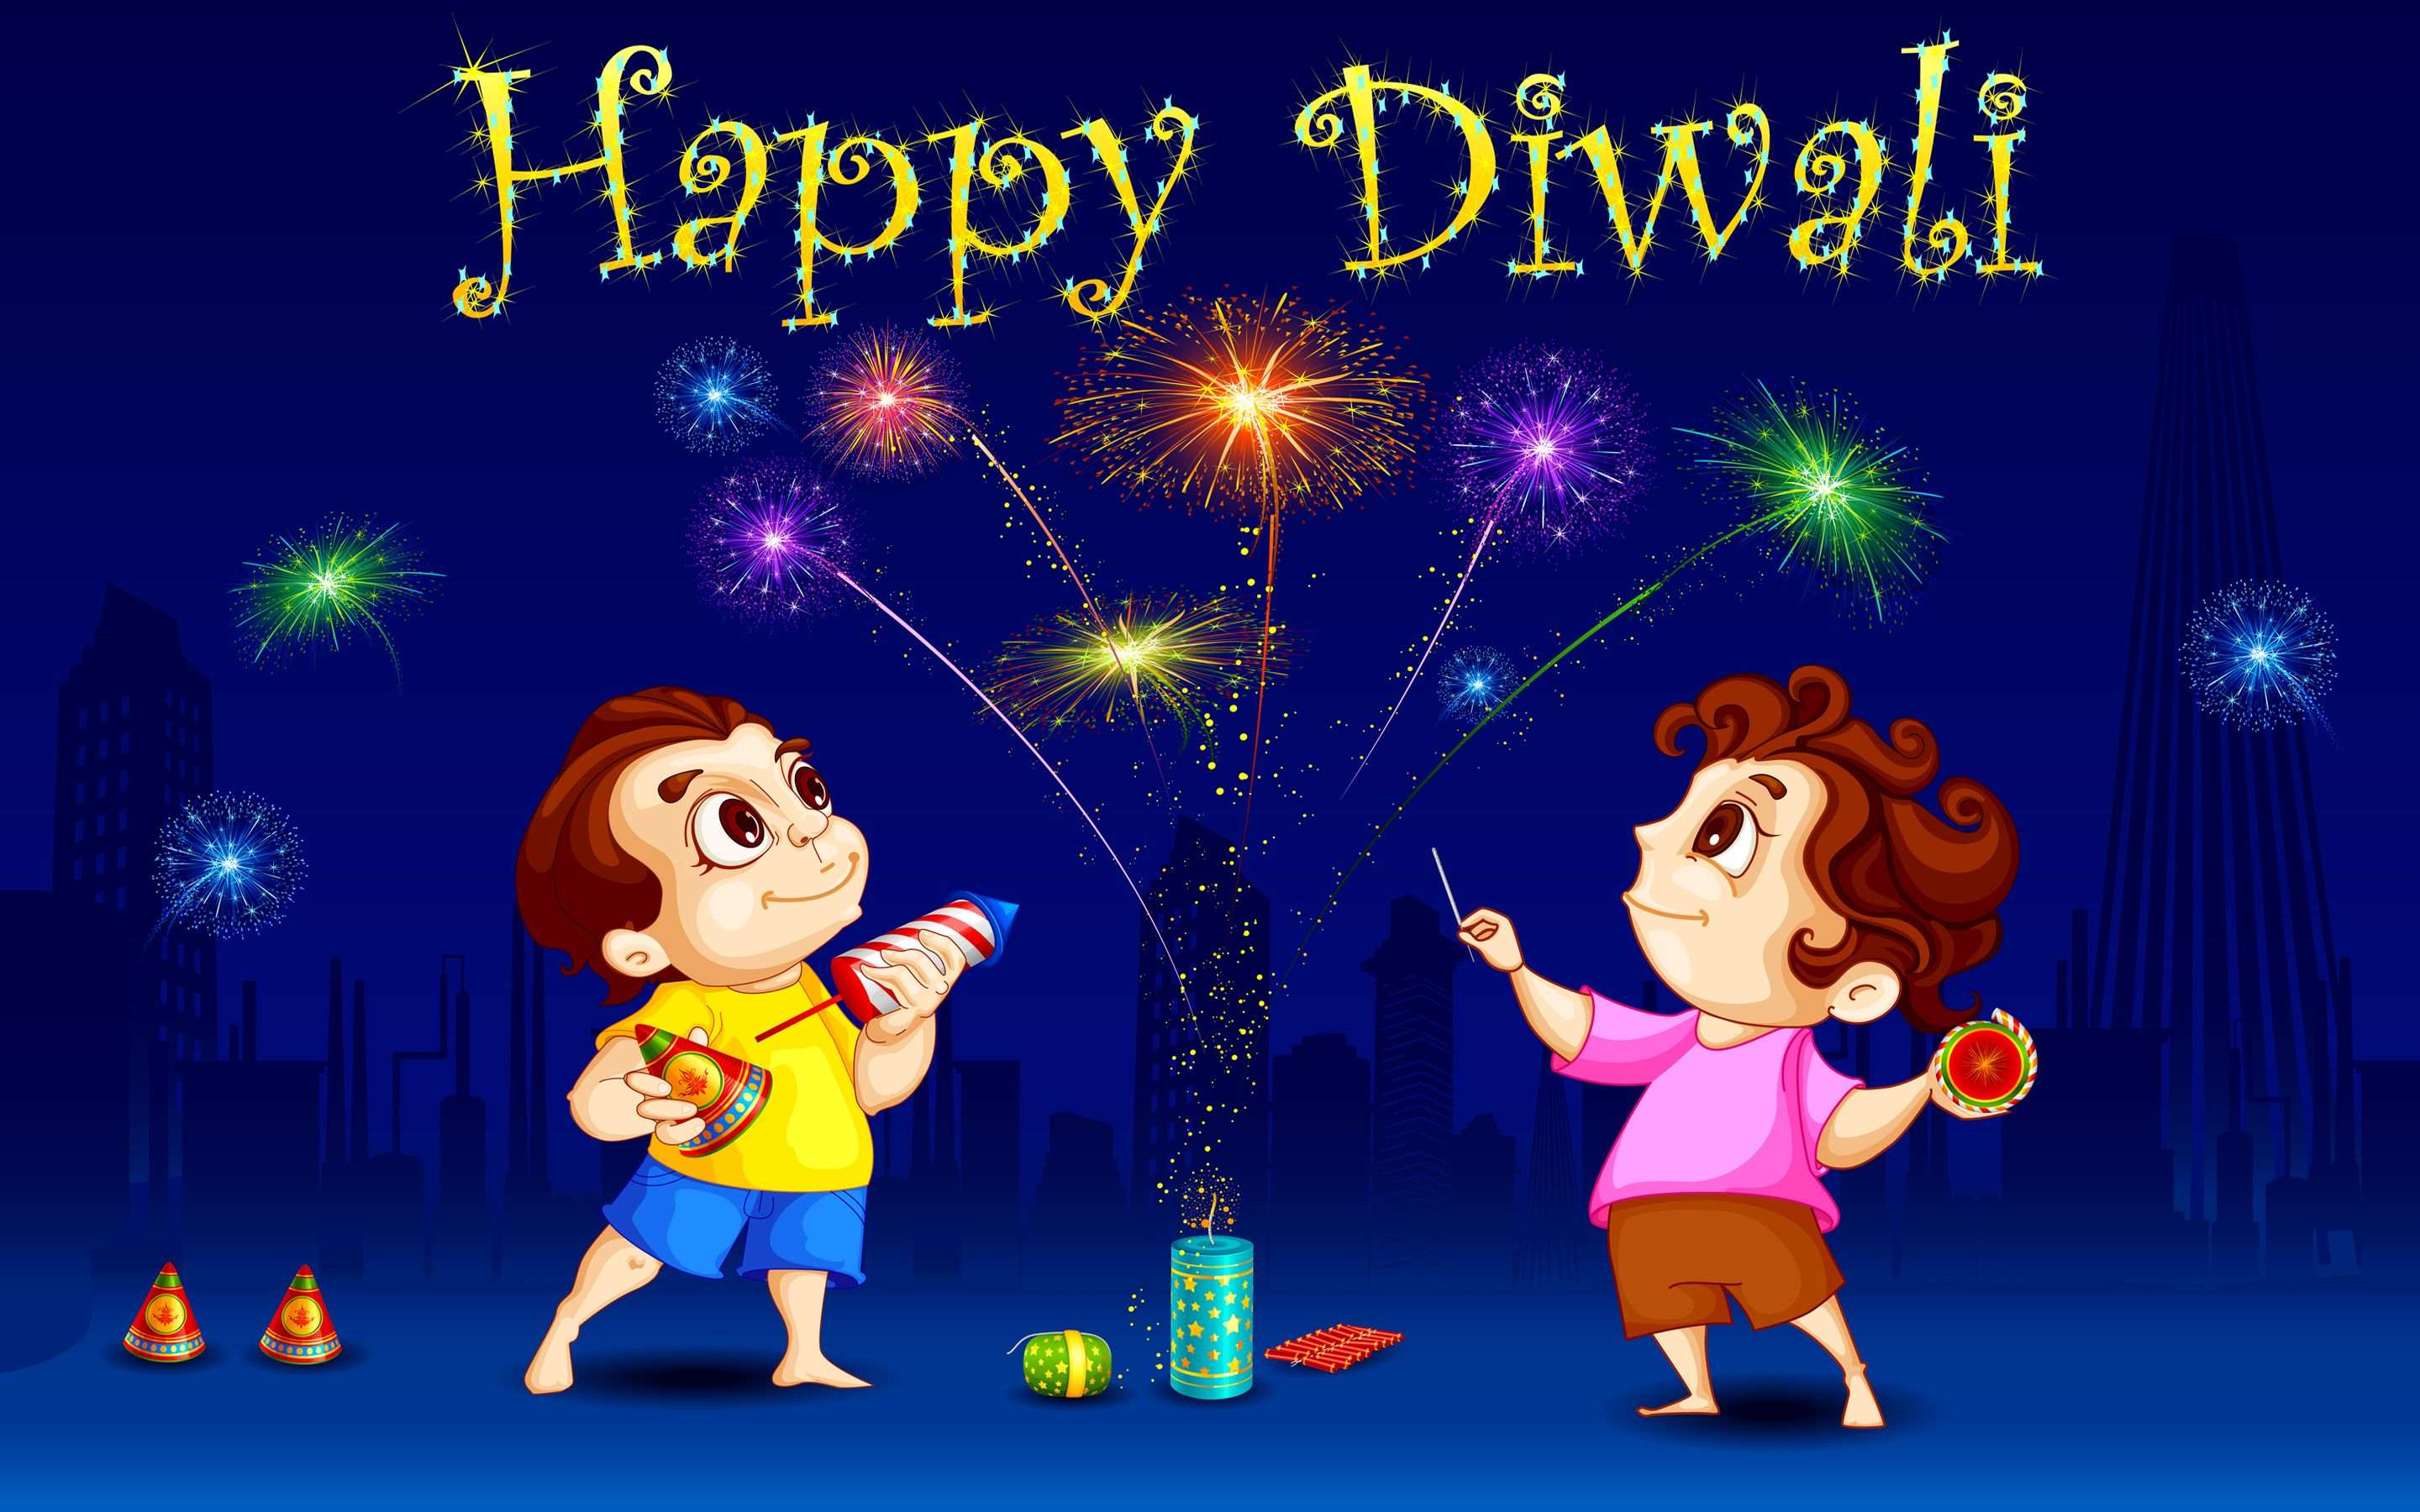 Animated Diwali Diya Wallpapers Happy Diwali Children Playing With Crackers Happy Diwali